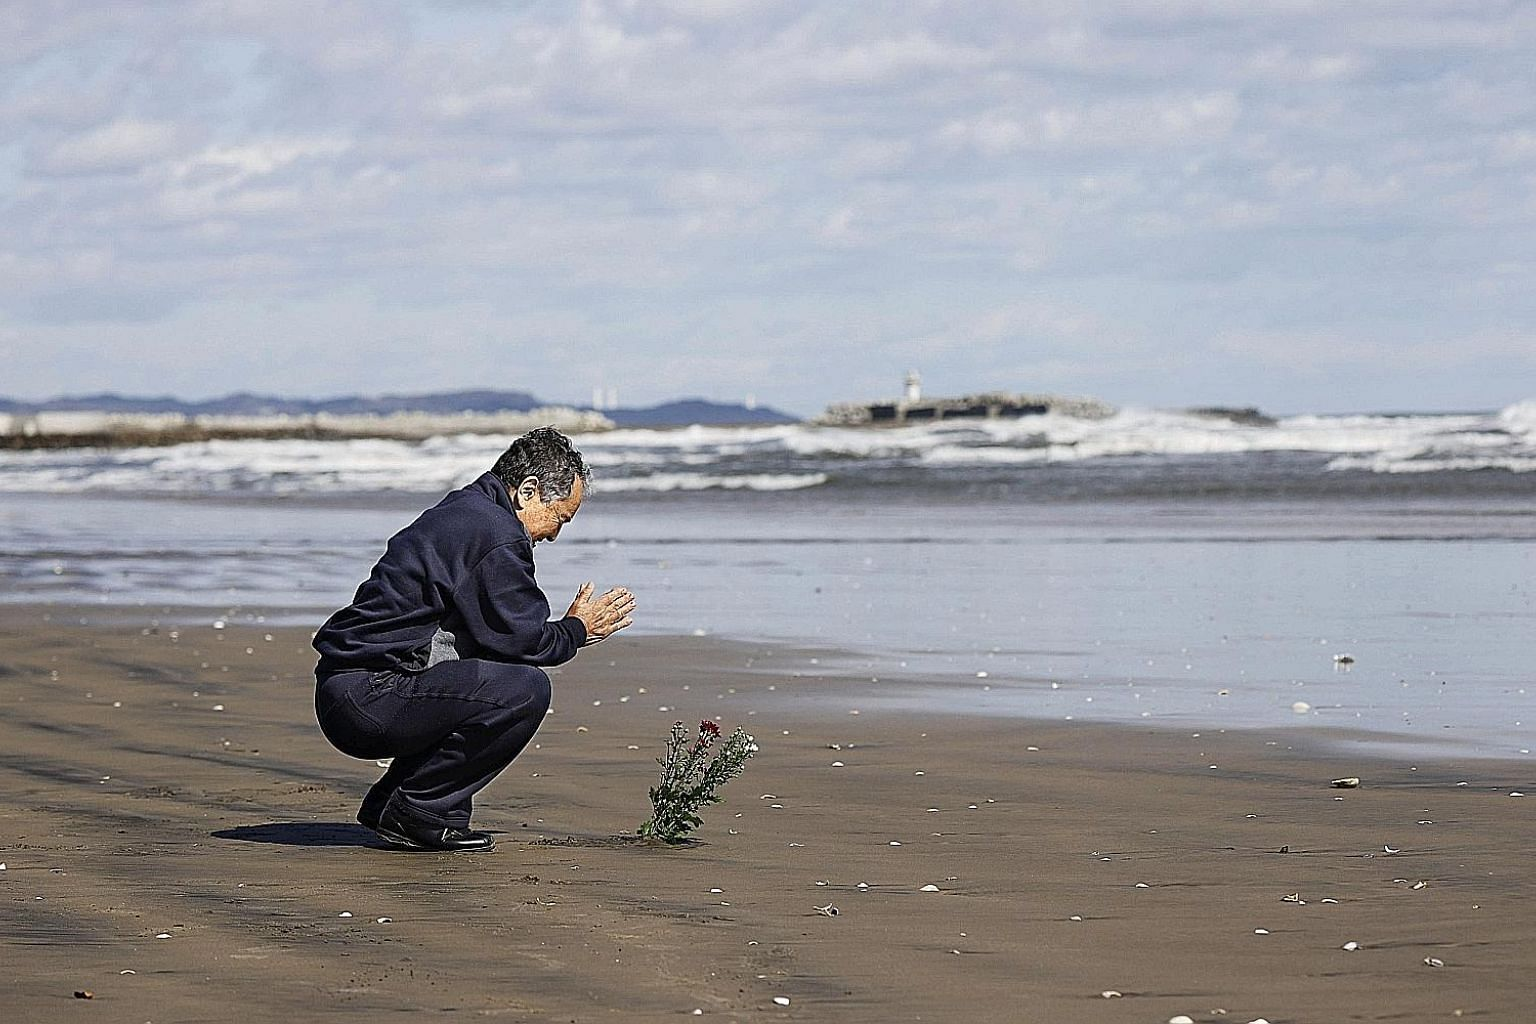 A man offering prayers by the sea in Minamisoma in memory of those killed by the Fukushima disaster of nine years ago. A man praying on the beach in Iwaki as Japan marked the anniversary of the Fukushima disaster. Across Japan, people observed a minu